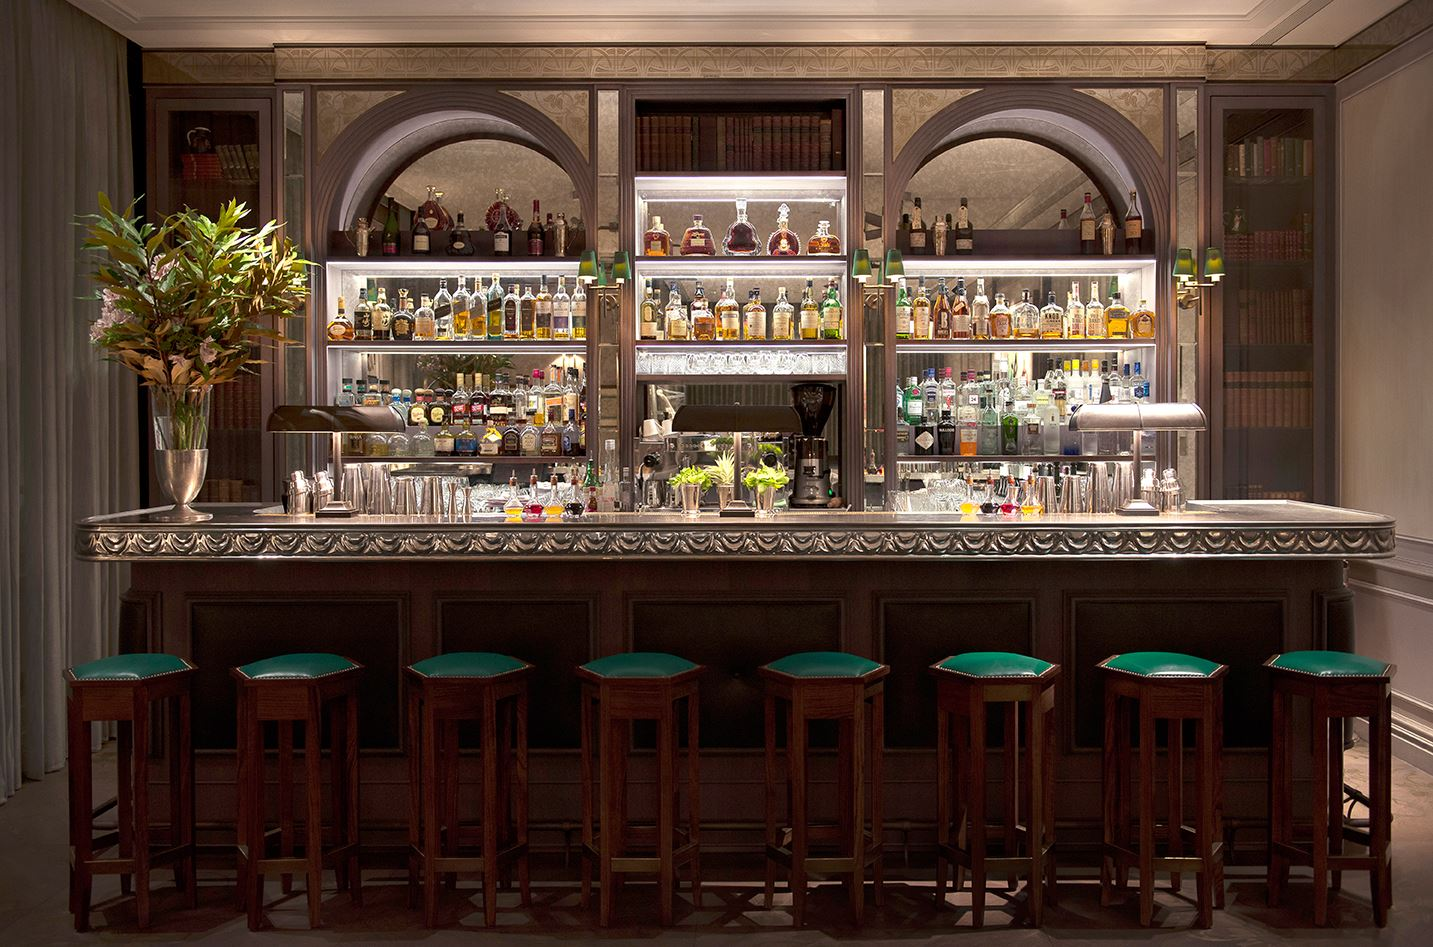 The 1940s style Library Bar.